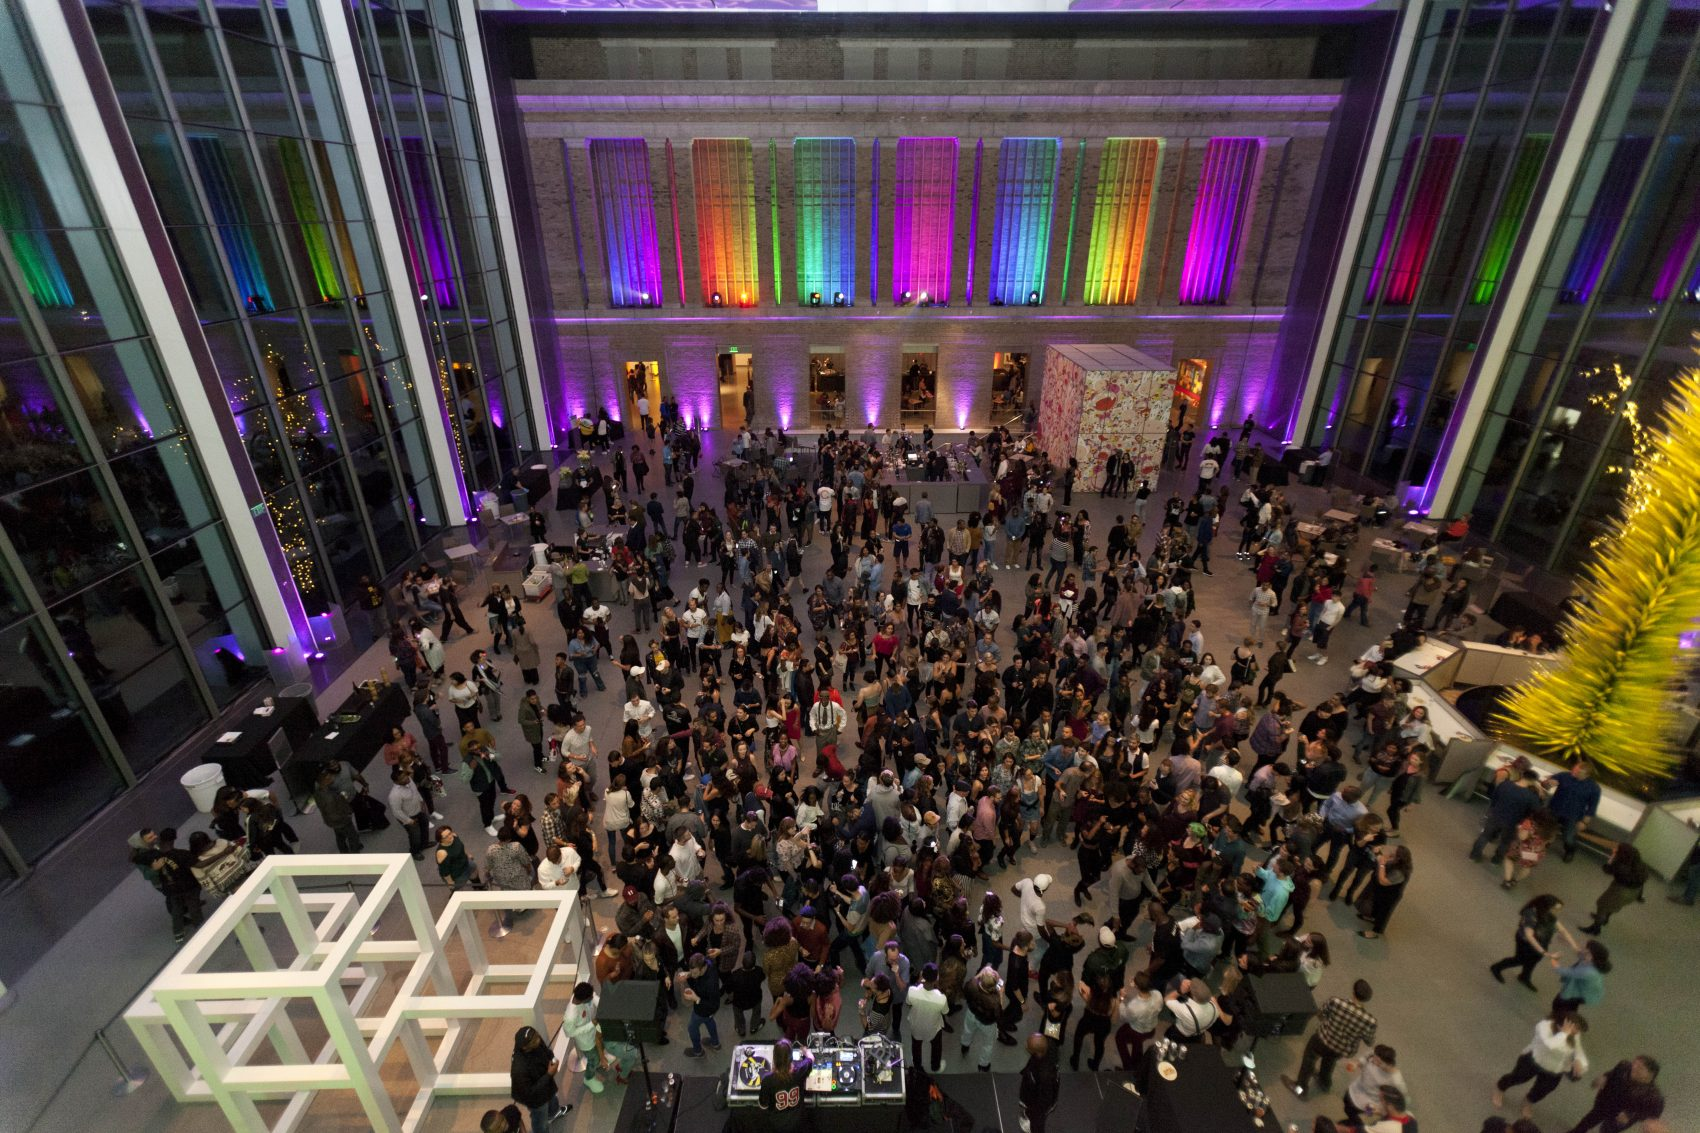 The MFA's recent Late Nite event. (Courtesy Fabian Gomez Photography)